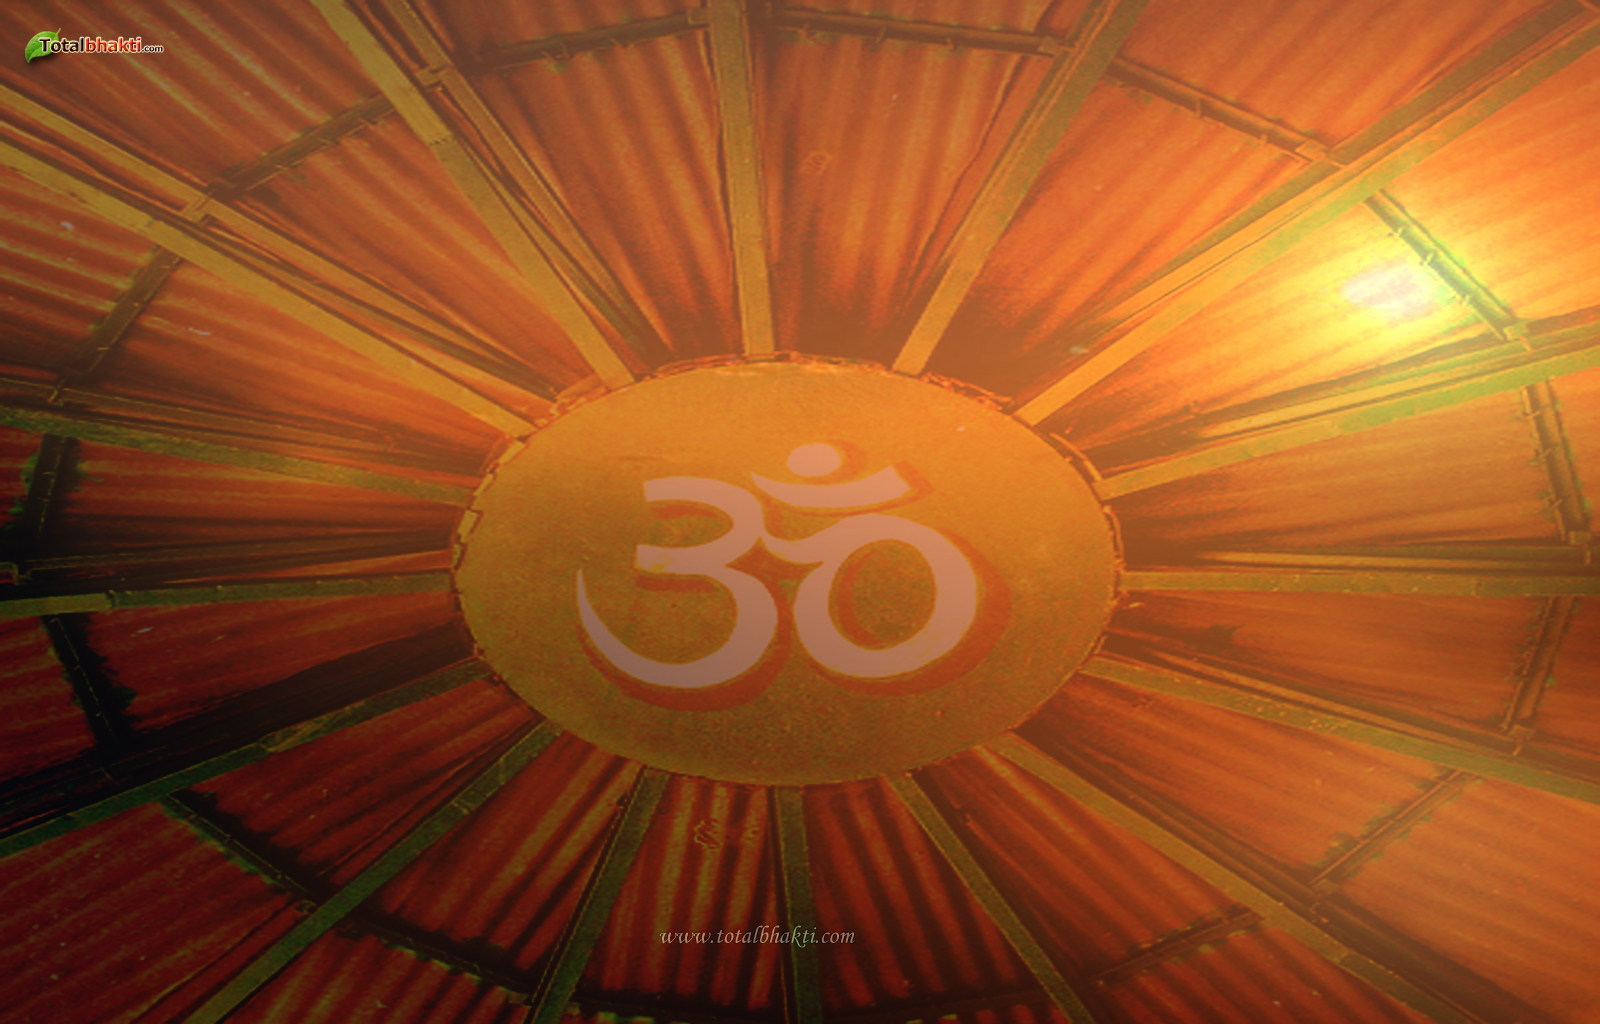 om wallpaper Hindu wallpaper Om Wallpaper Brown Green and Yellow 1600x1024